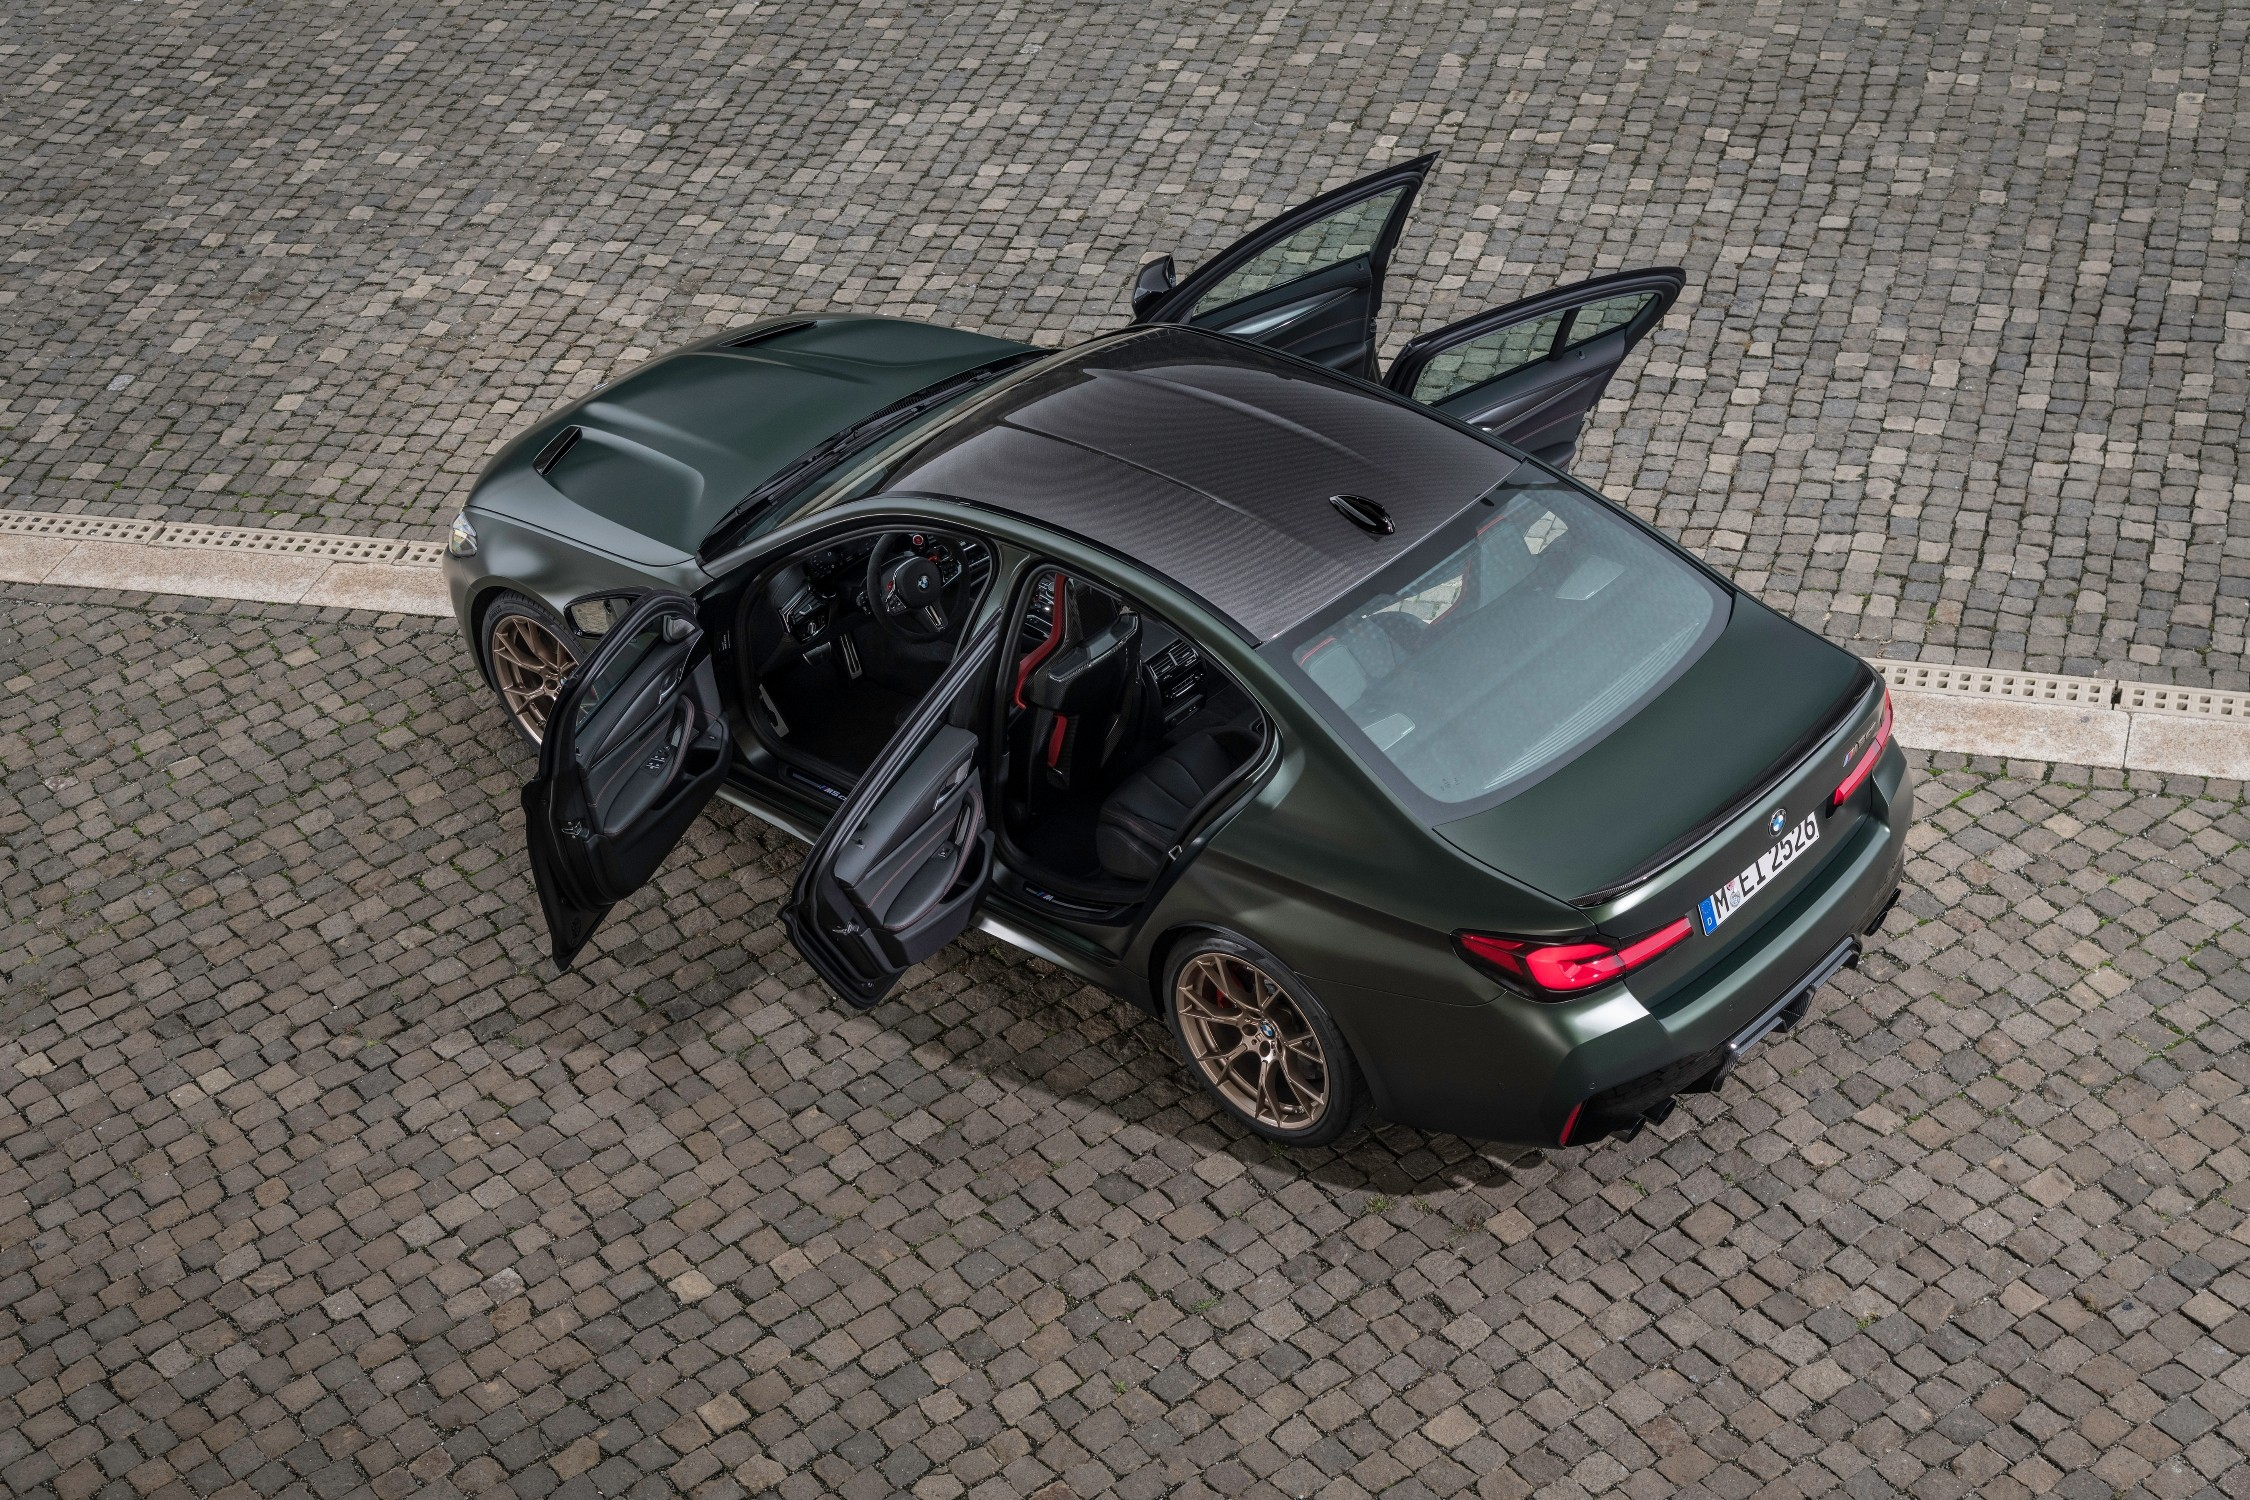 The new BMW M5 CS will be offered only in the 2022 model, with a limited edition for 1 year.